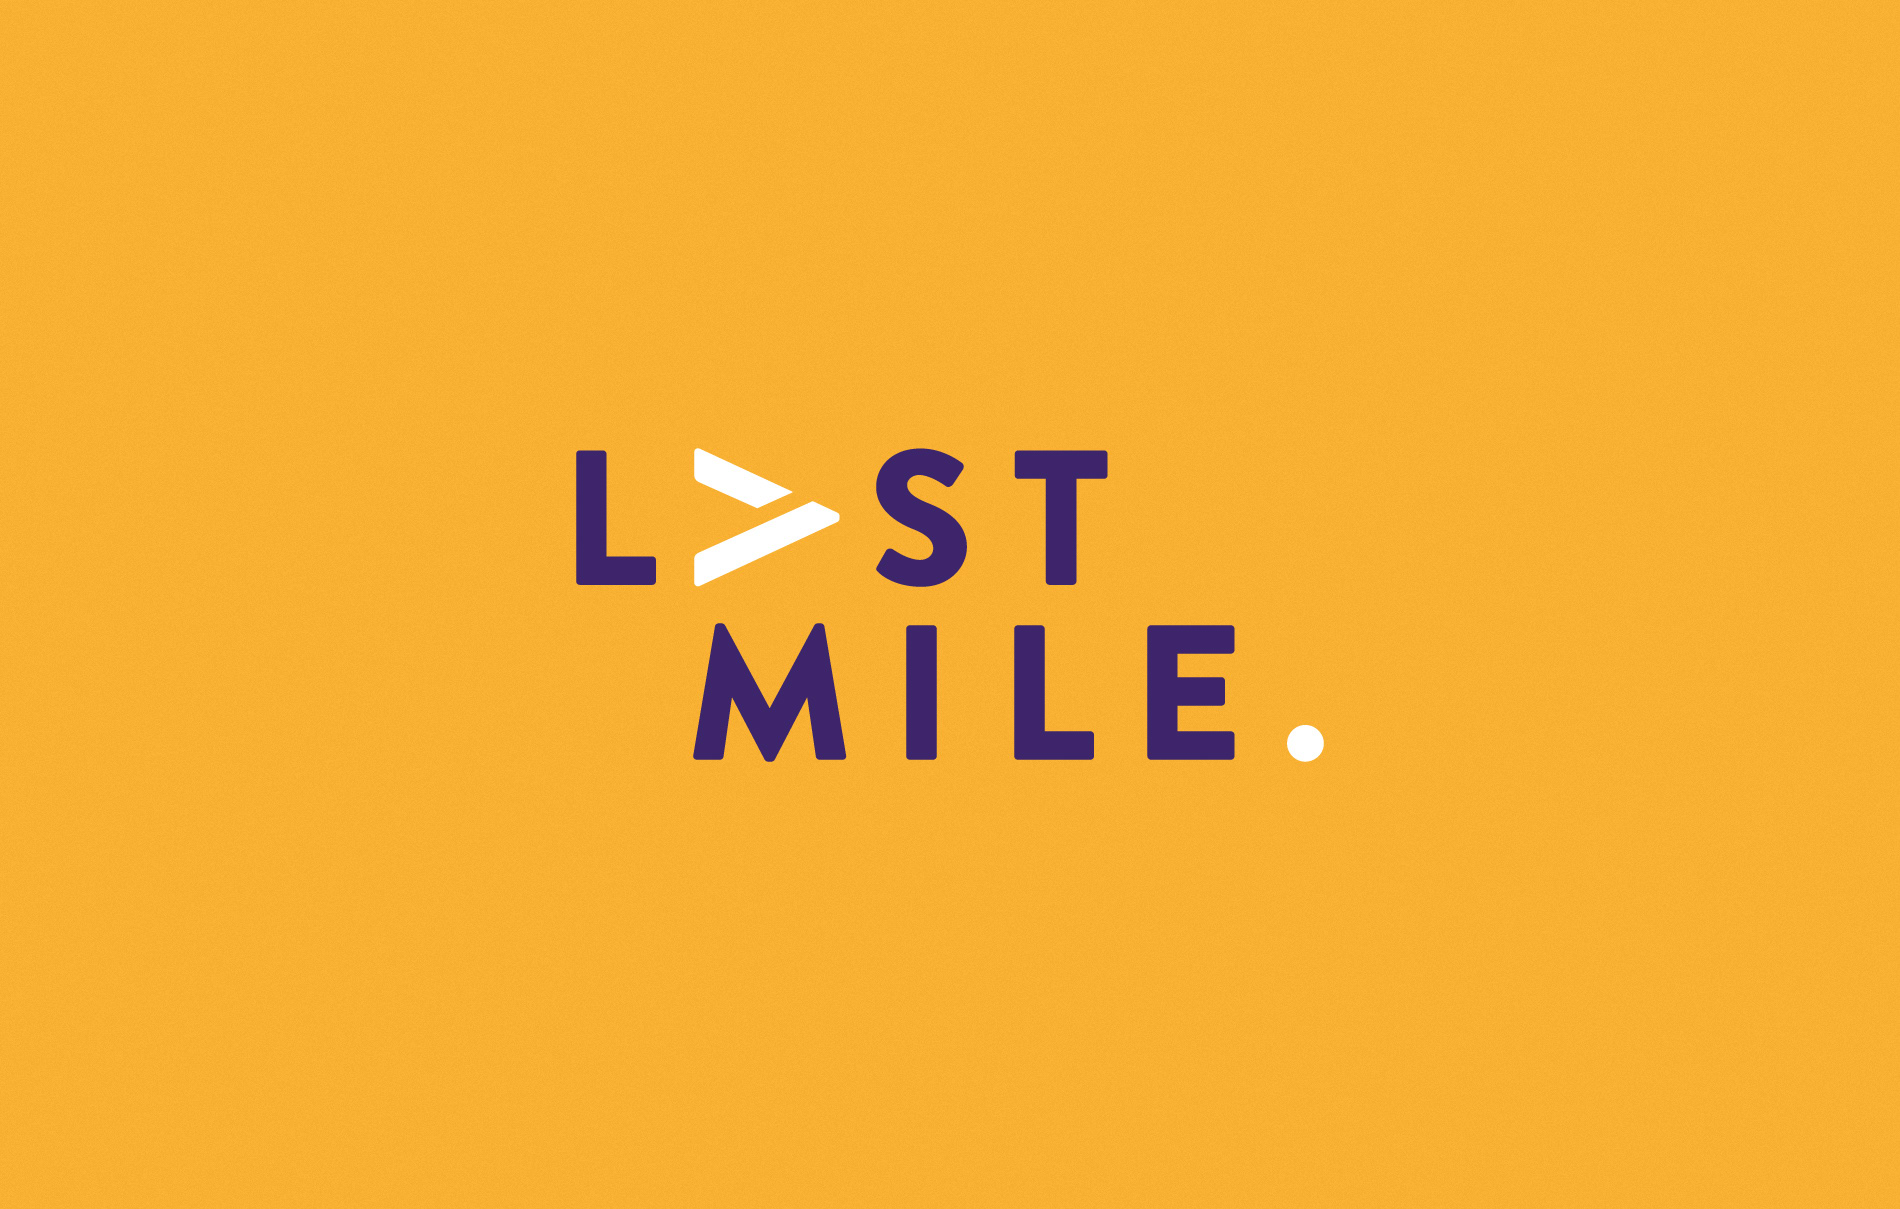 last mile problem The last mile problem, at its core, is quite a simple one — public transport doesn't take us exactly where we need to go, parking is not always available everywhere we go, owning a car or any.